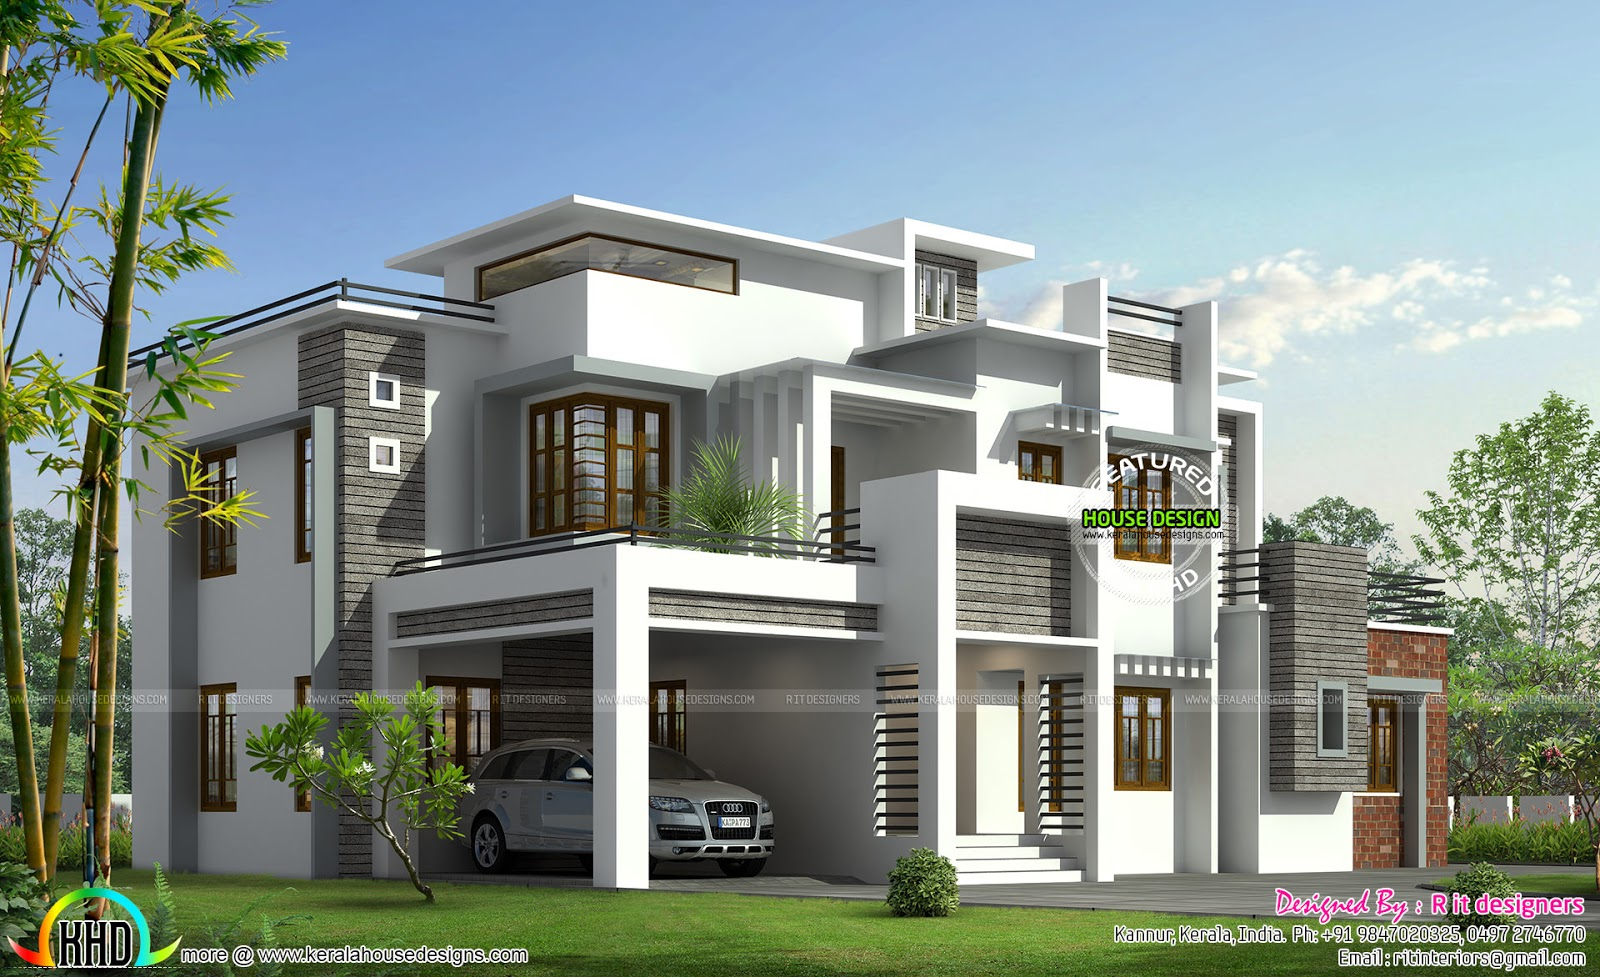 Box model contemporary house kerala home design and for Contemporary modern style house plans